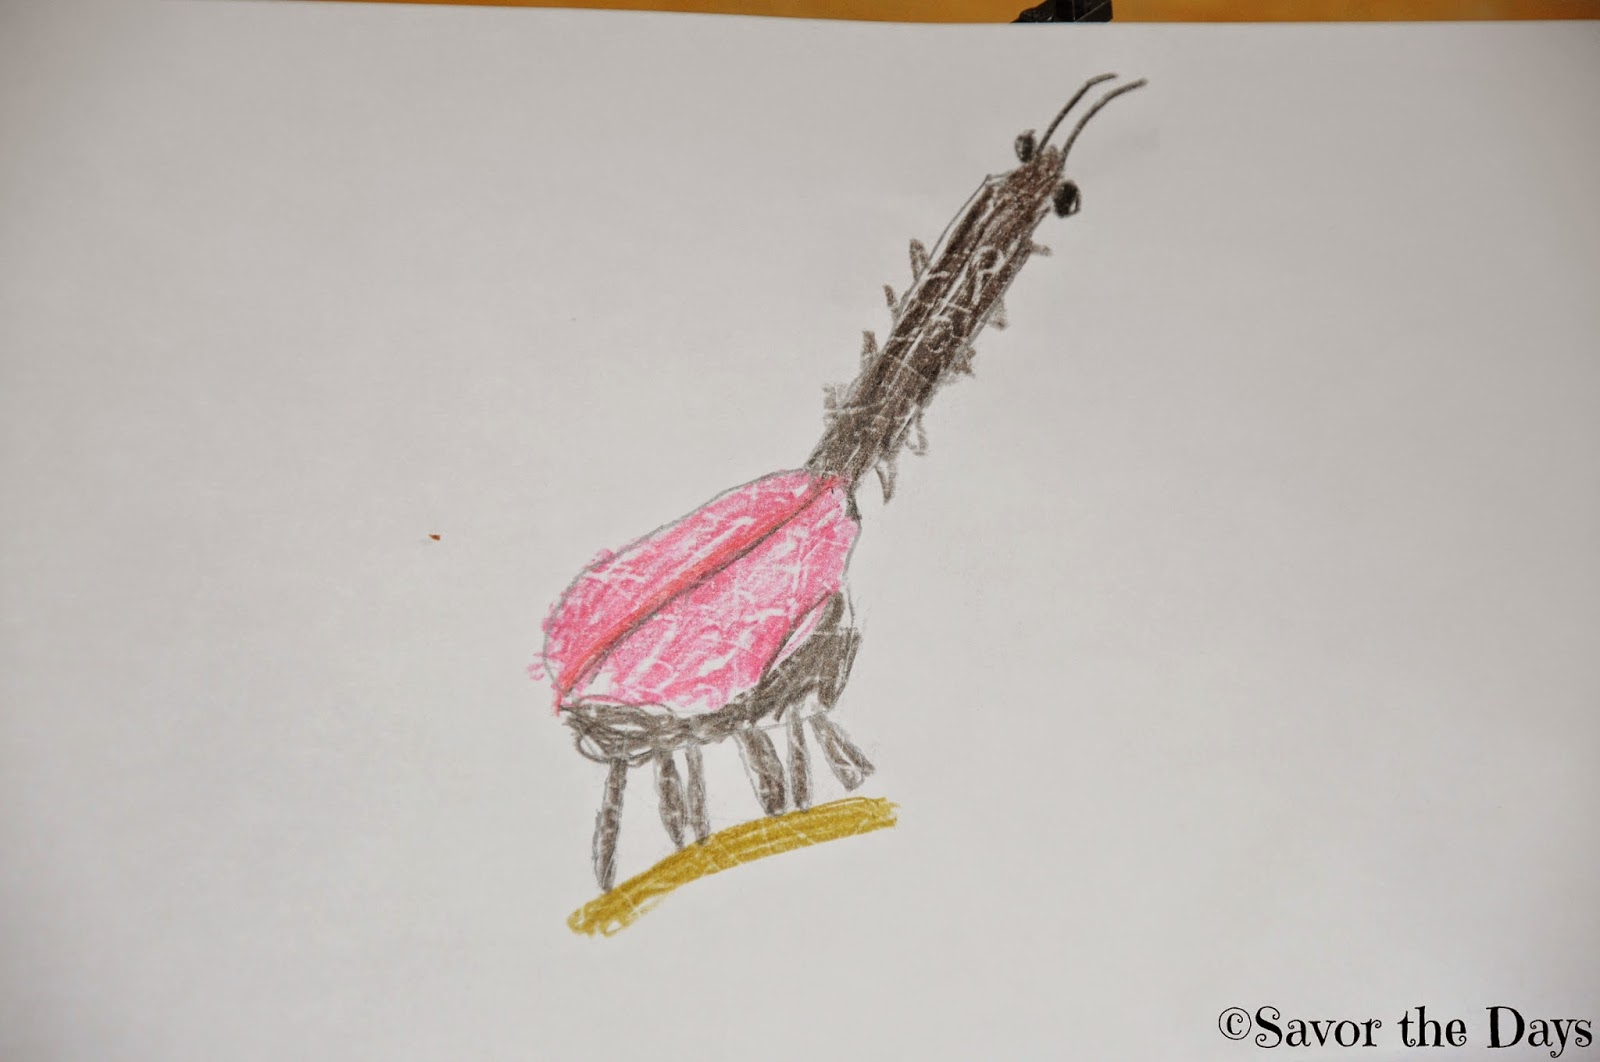 Drawing of a giraffe weevil